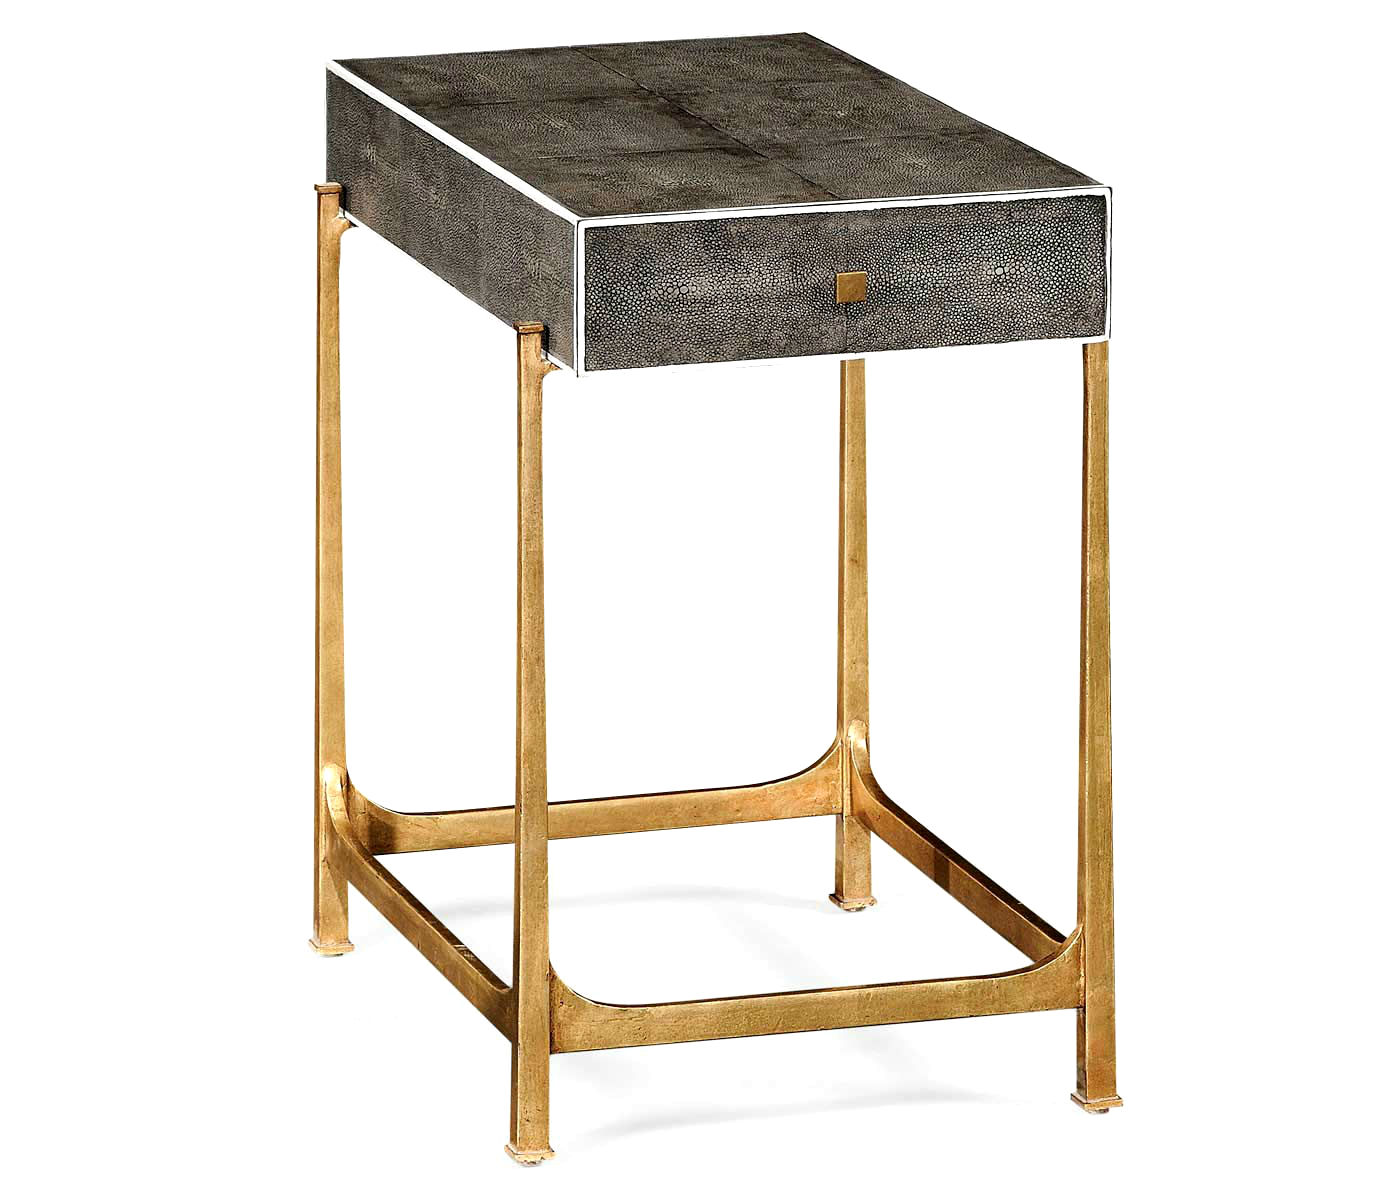 shagreen side table end accent tables tall metal art deco iron black gold gilded partner coffee console available hospitality residential white lacquer cherry wood set rustic top